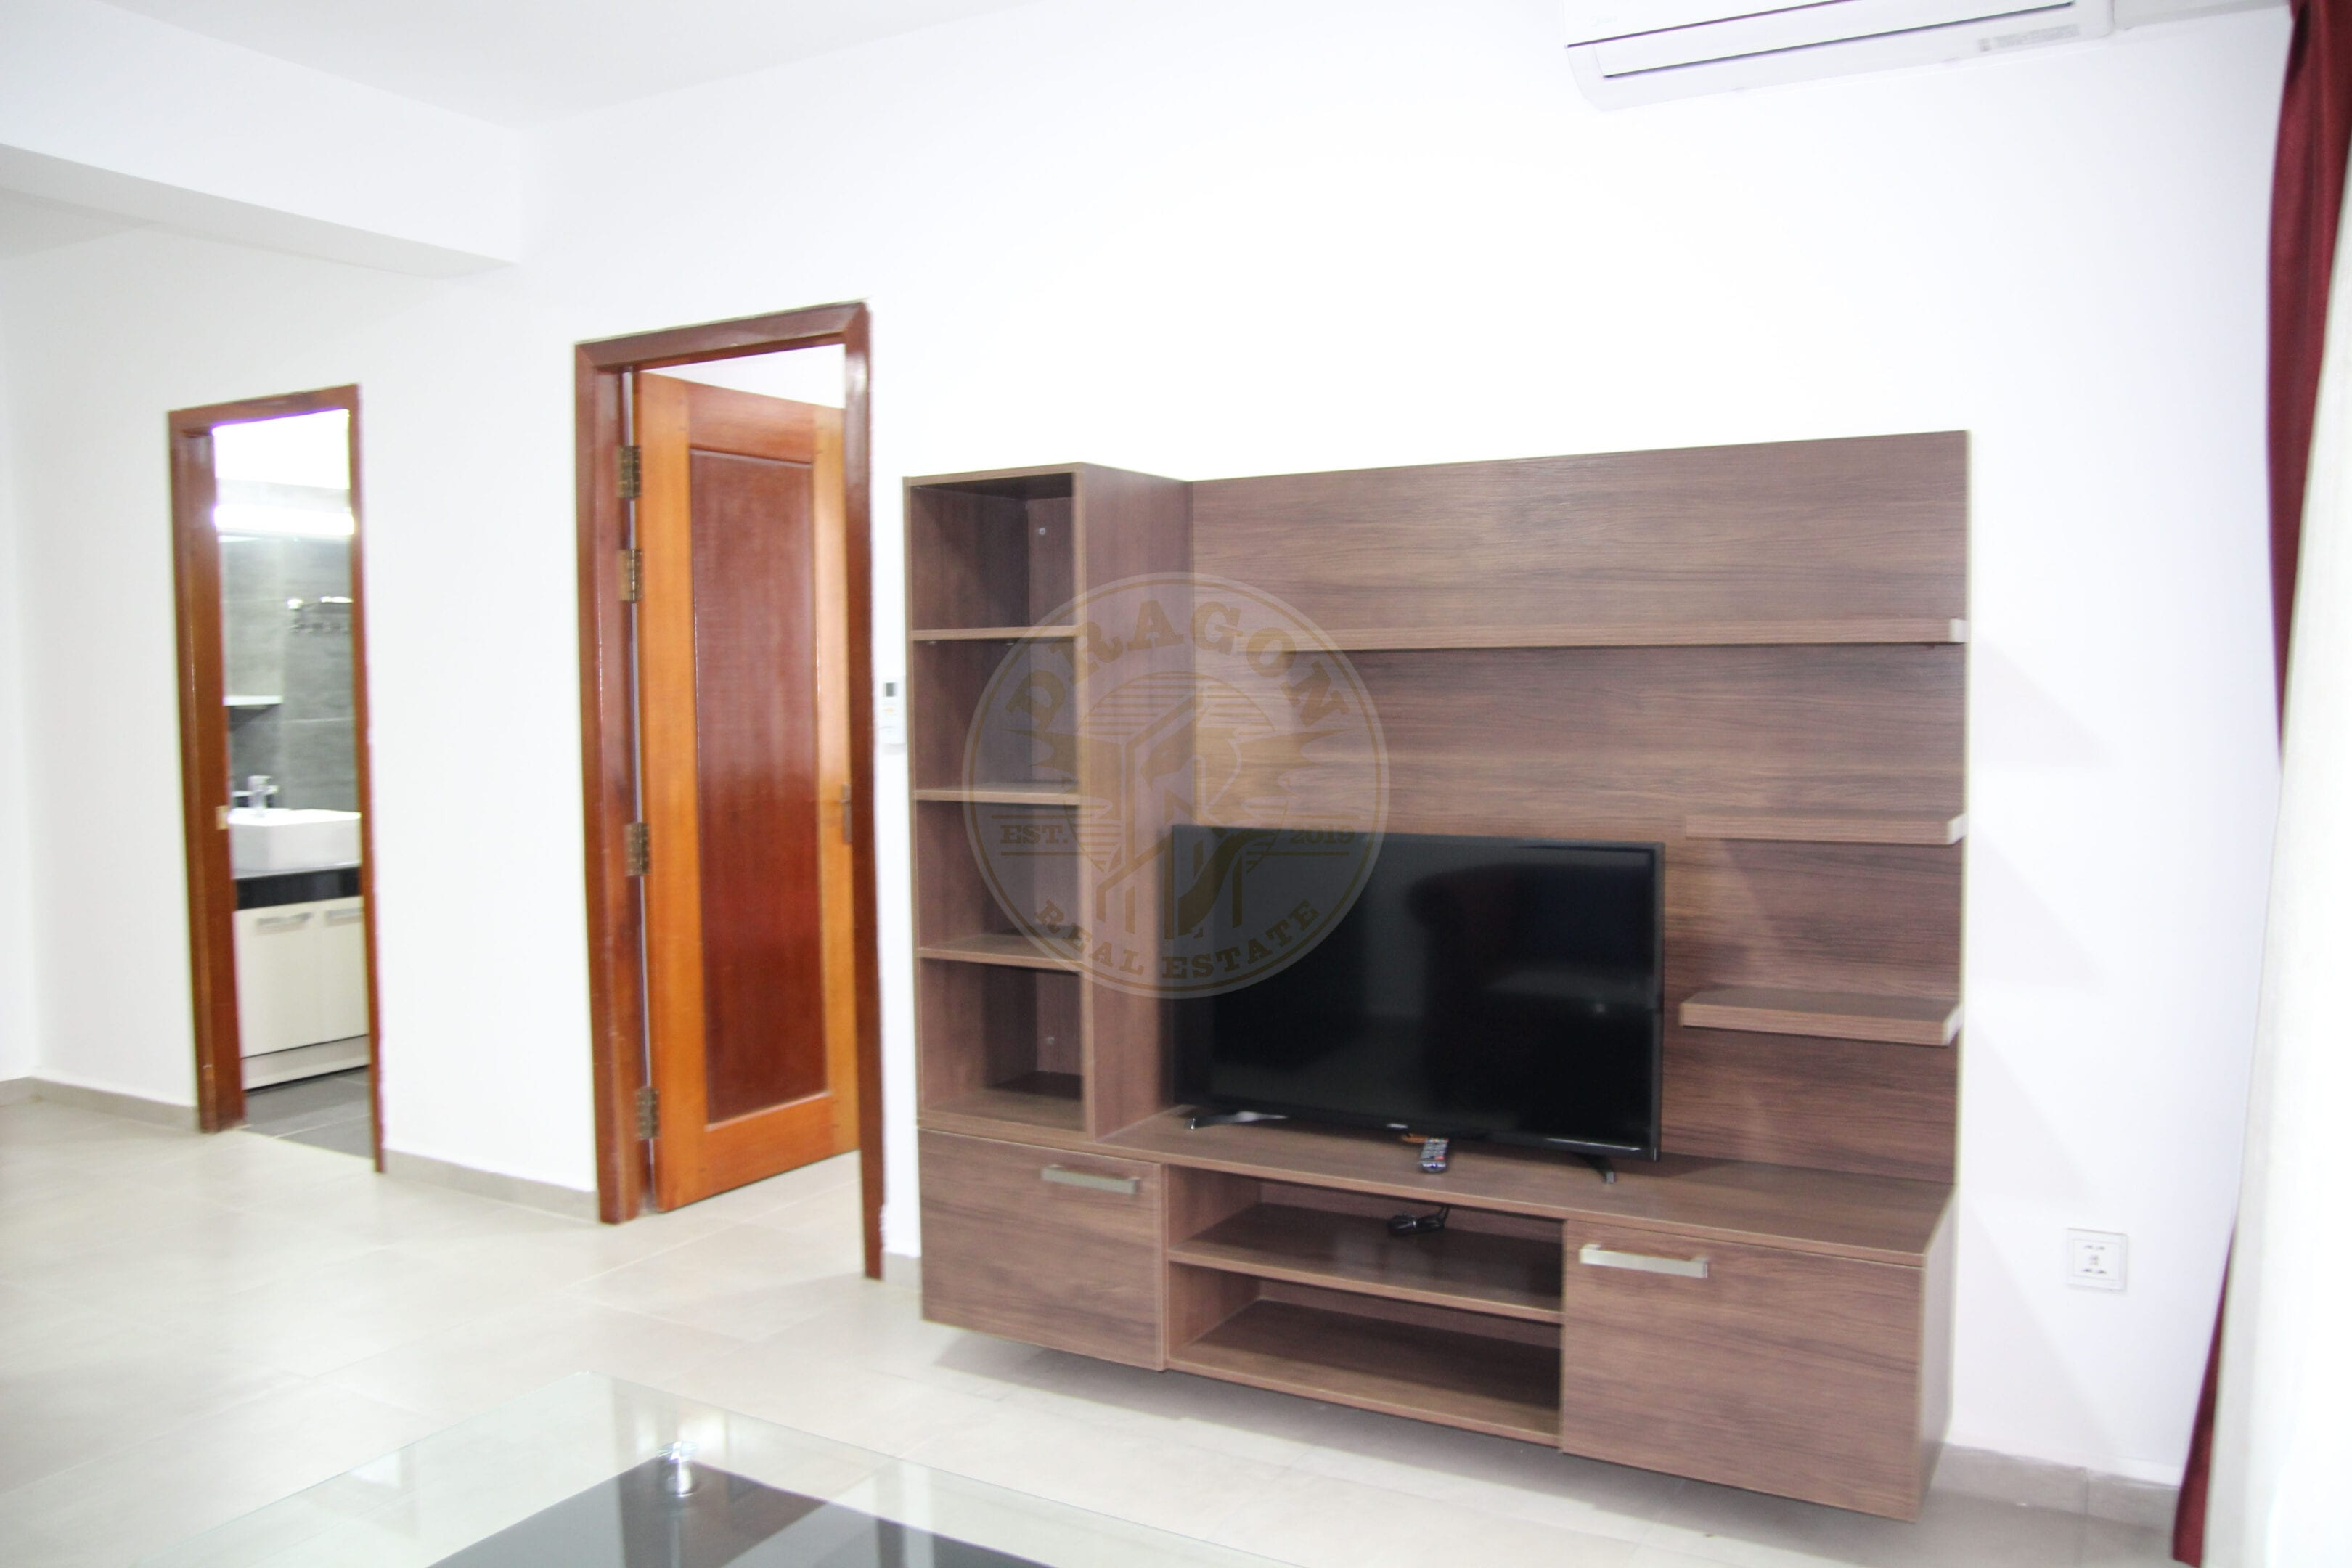 Remarkable Value. Apartment for Rent. Sihanoukville Property